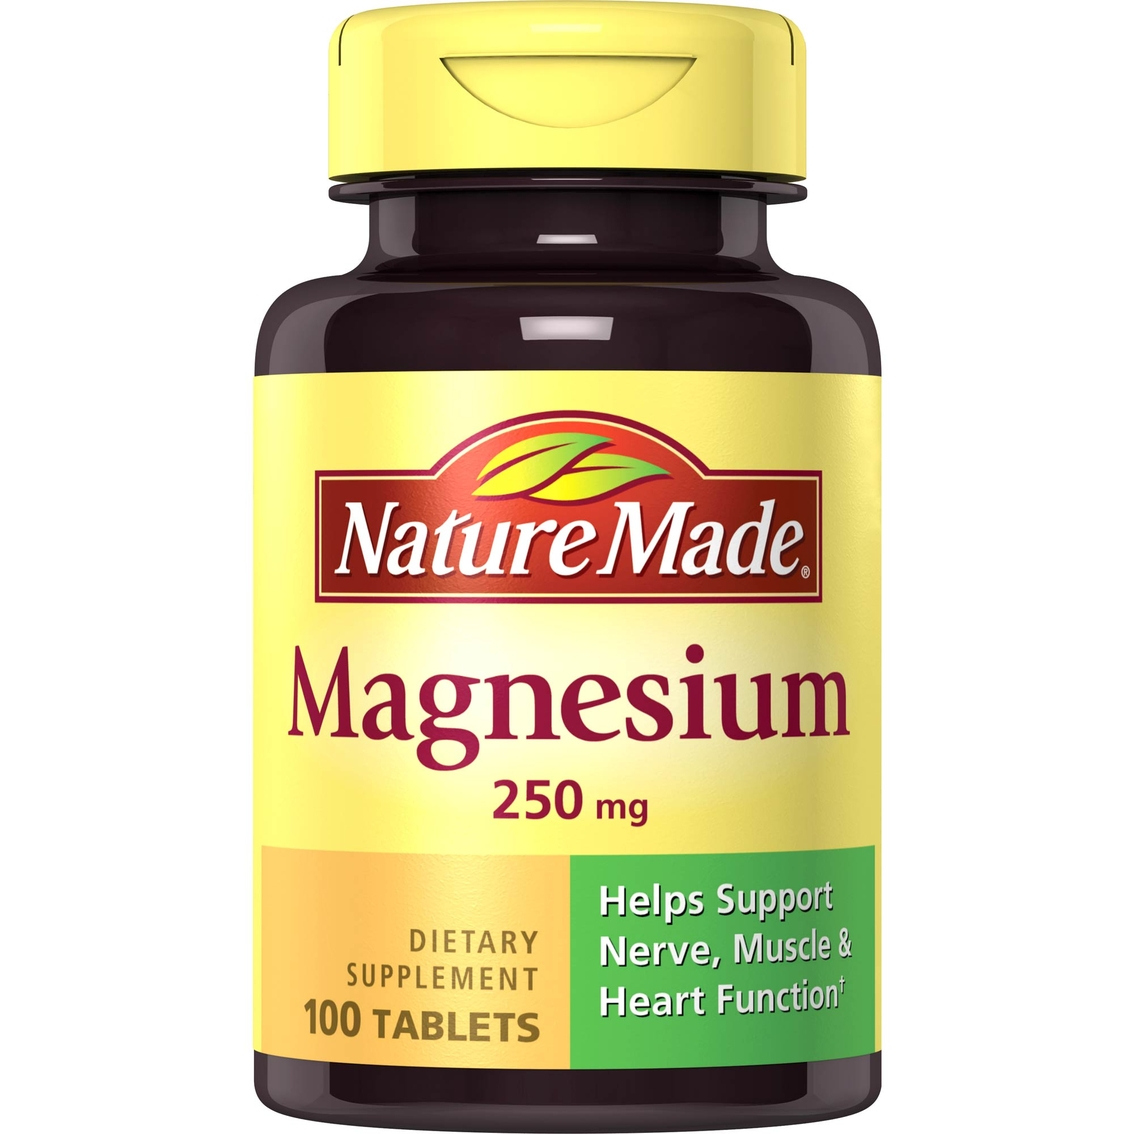 magnesium nature mg 250 tablets oxide supplements ct count mineral nutrition vitamins amazon sellers sup shopmyexchange